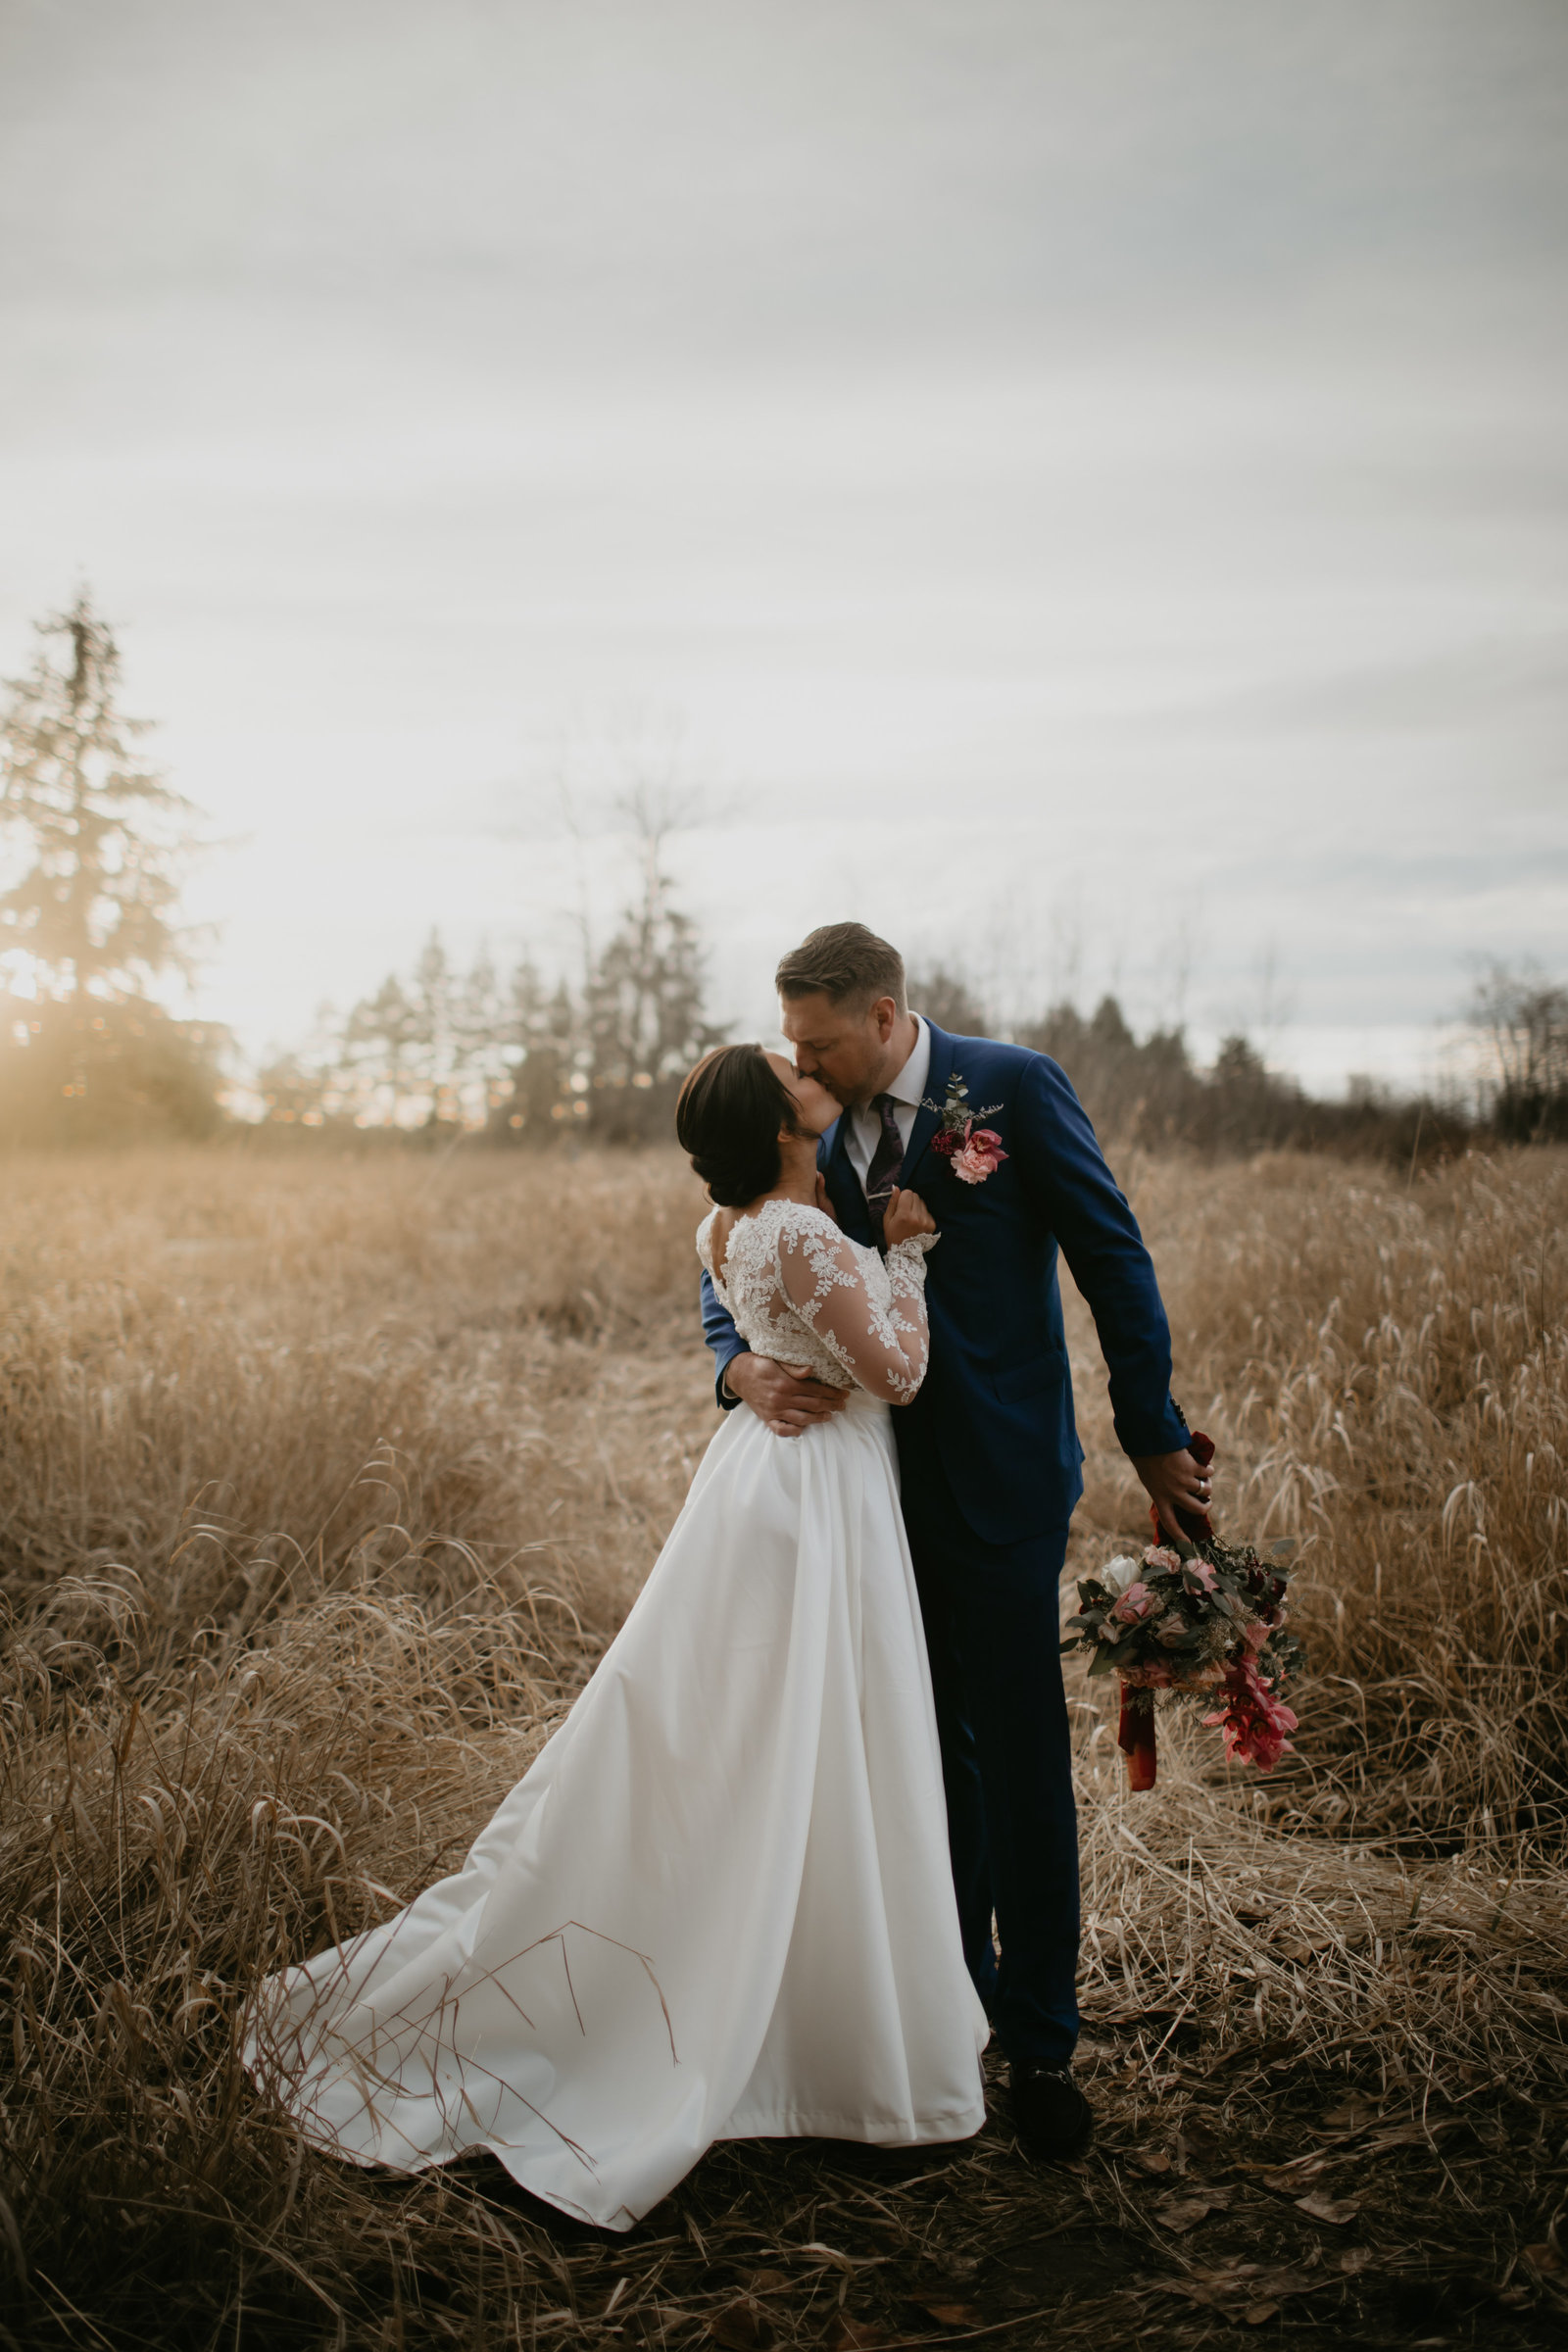 FORT-LANGLEY-MILNER-CHAPPEL-WEDDING-MEGHAN-HEMSTRA-PHOTOGRAPHY-4